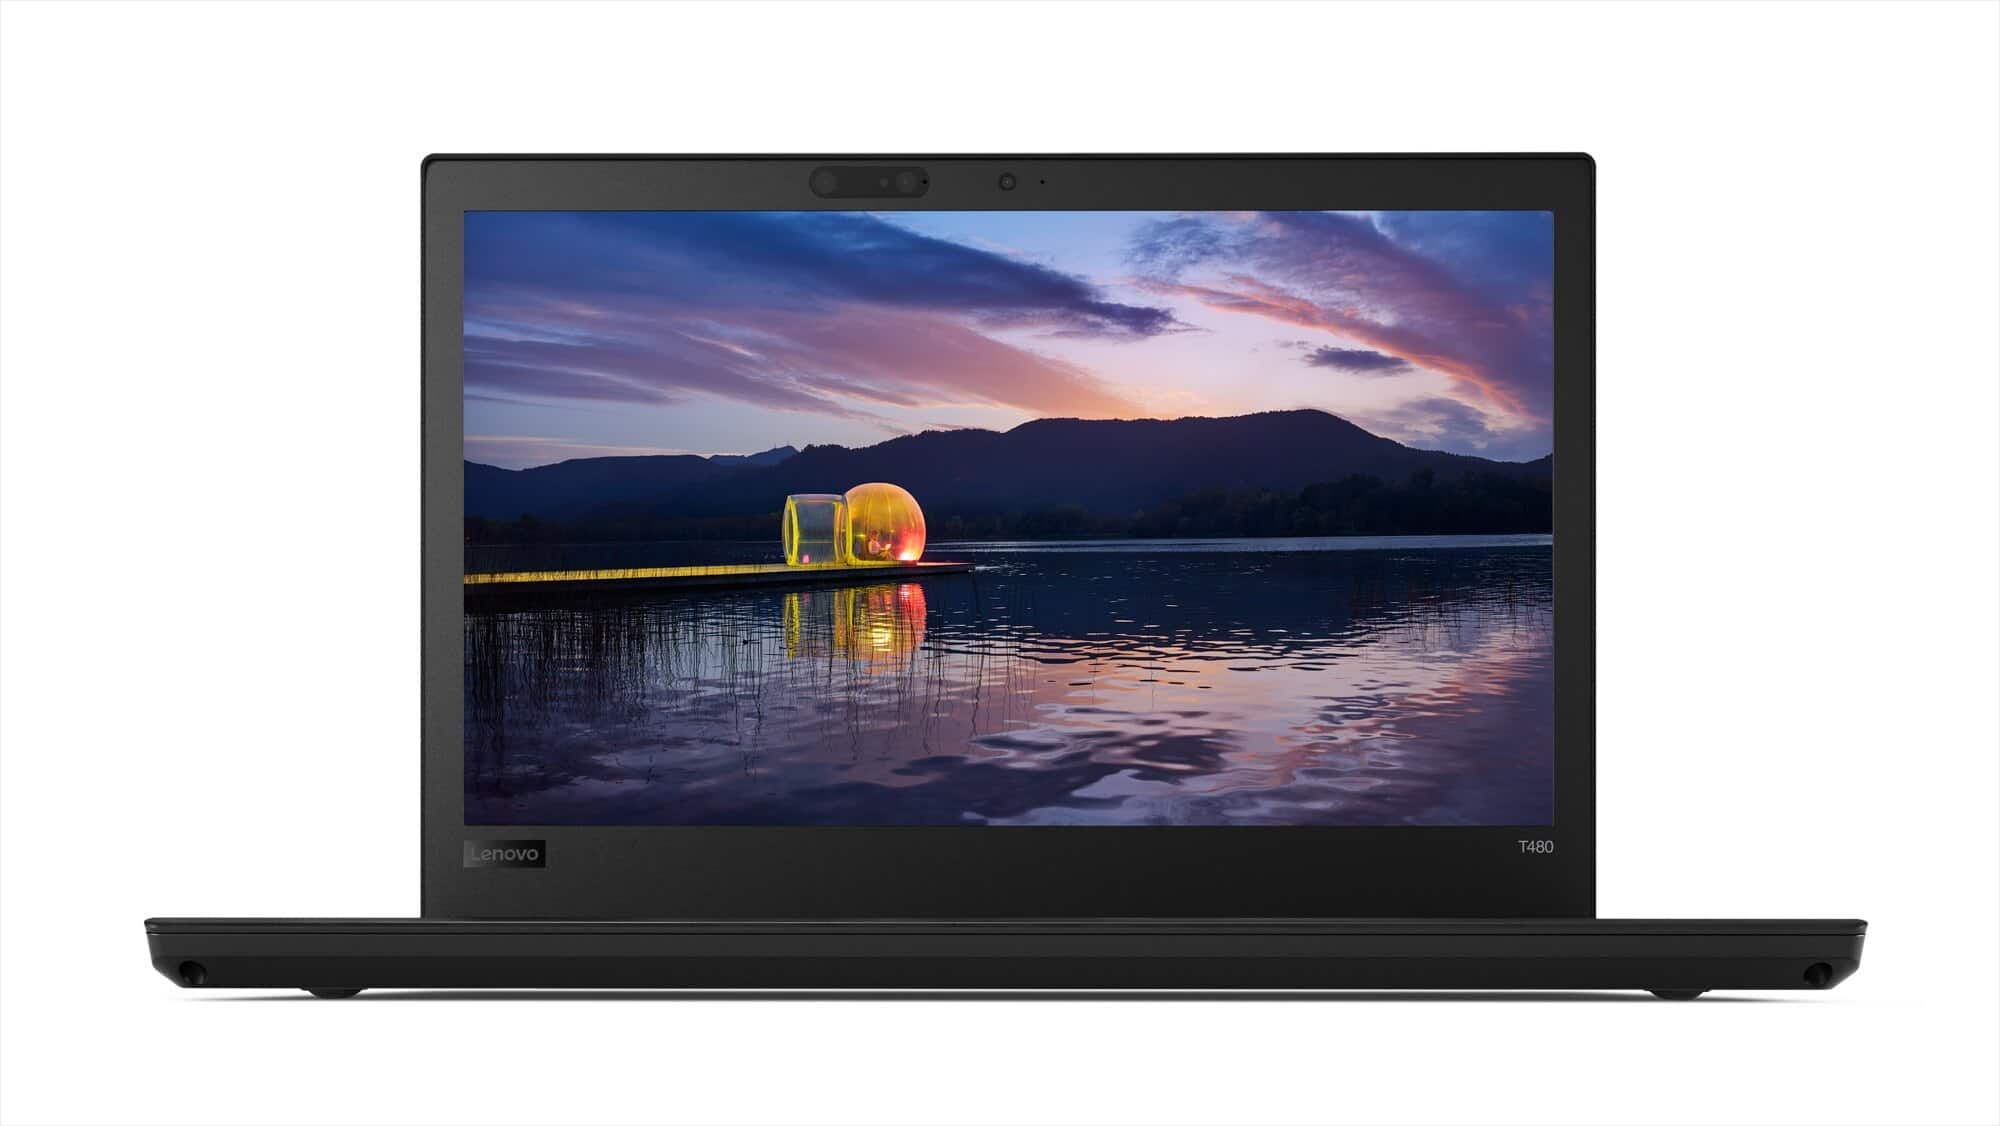 LENOVO THINKPAD T480, 14.0 FHD IPS, I5-8250U, 8GB, 512GB SSD, WIN 10 HOME 64 +26% Back - 18,174 Rakuten points ($181.74)! $699